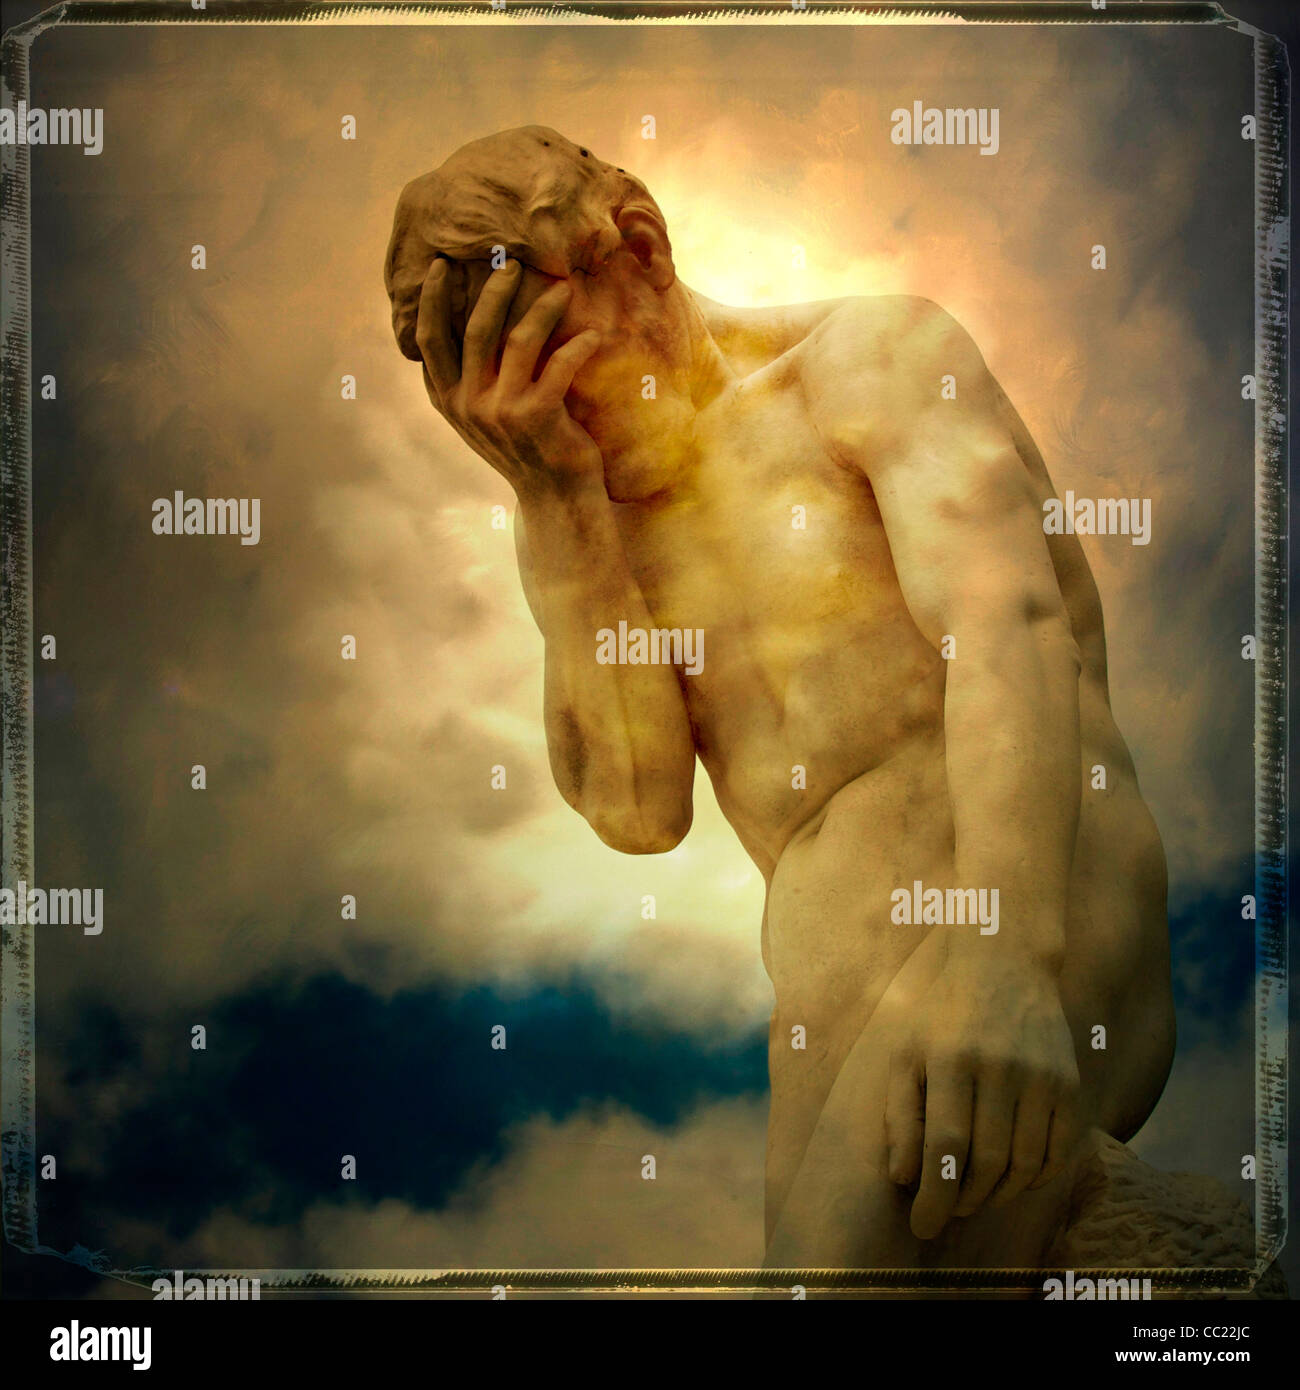 Statue of man covering face - sorrow, sadness, mental health or despair concept - Stock Image